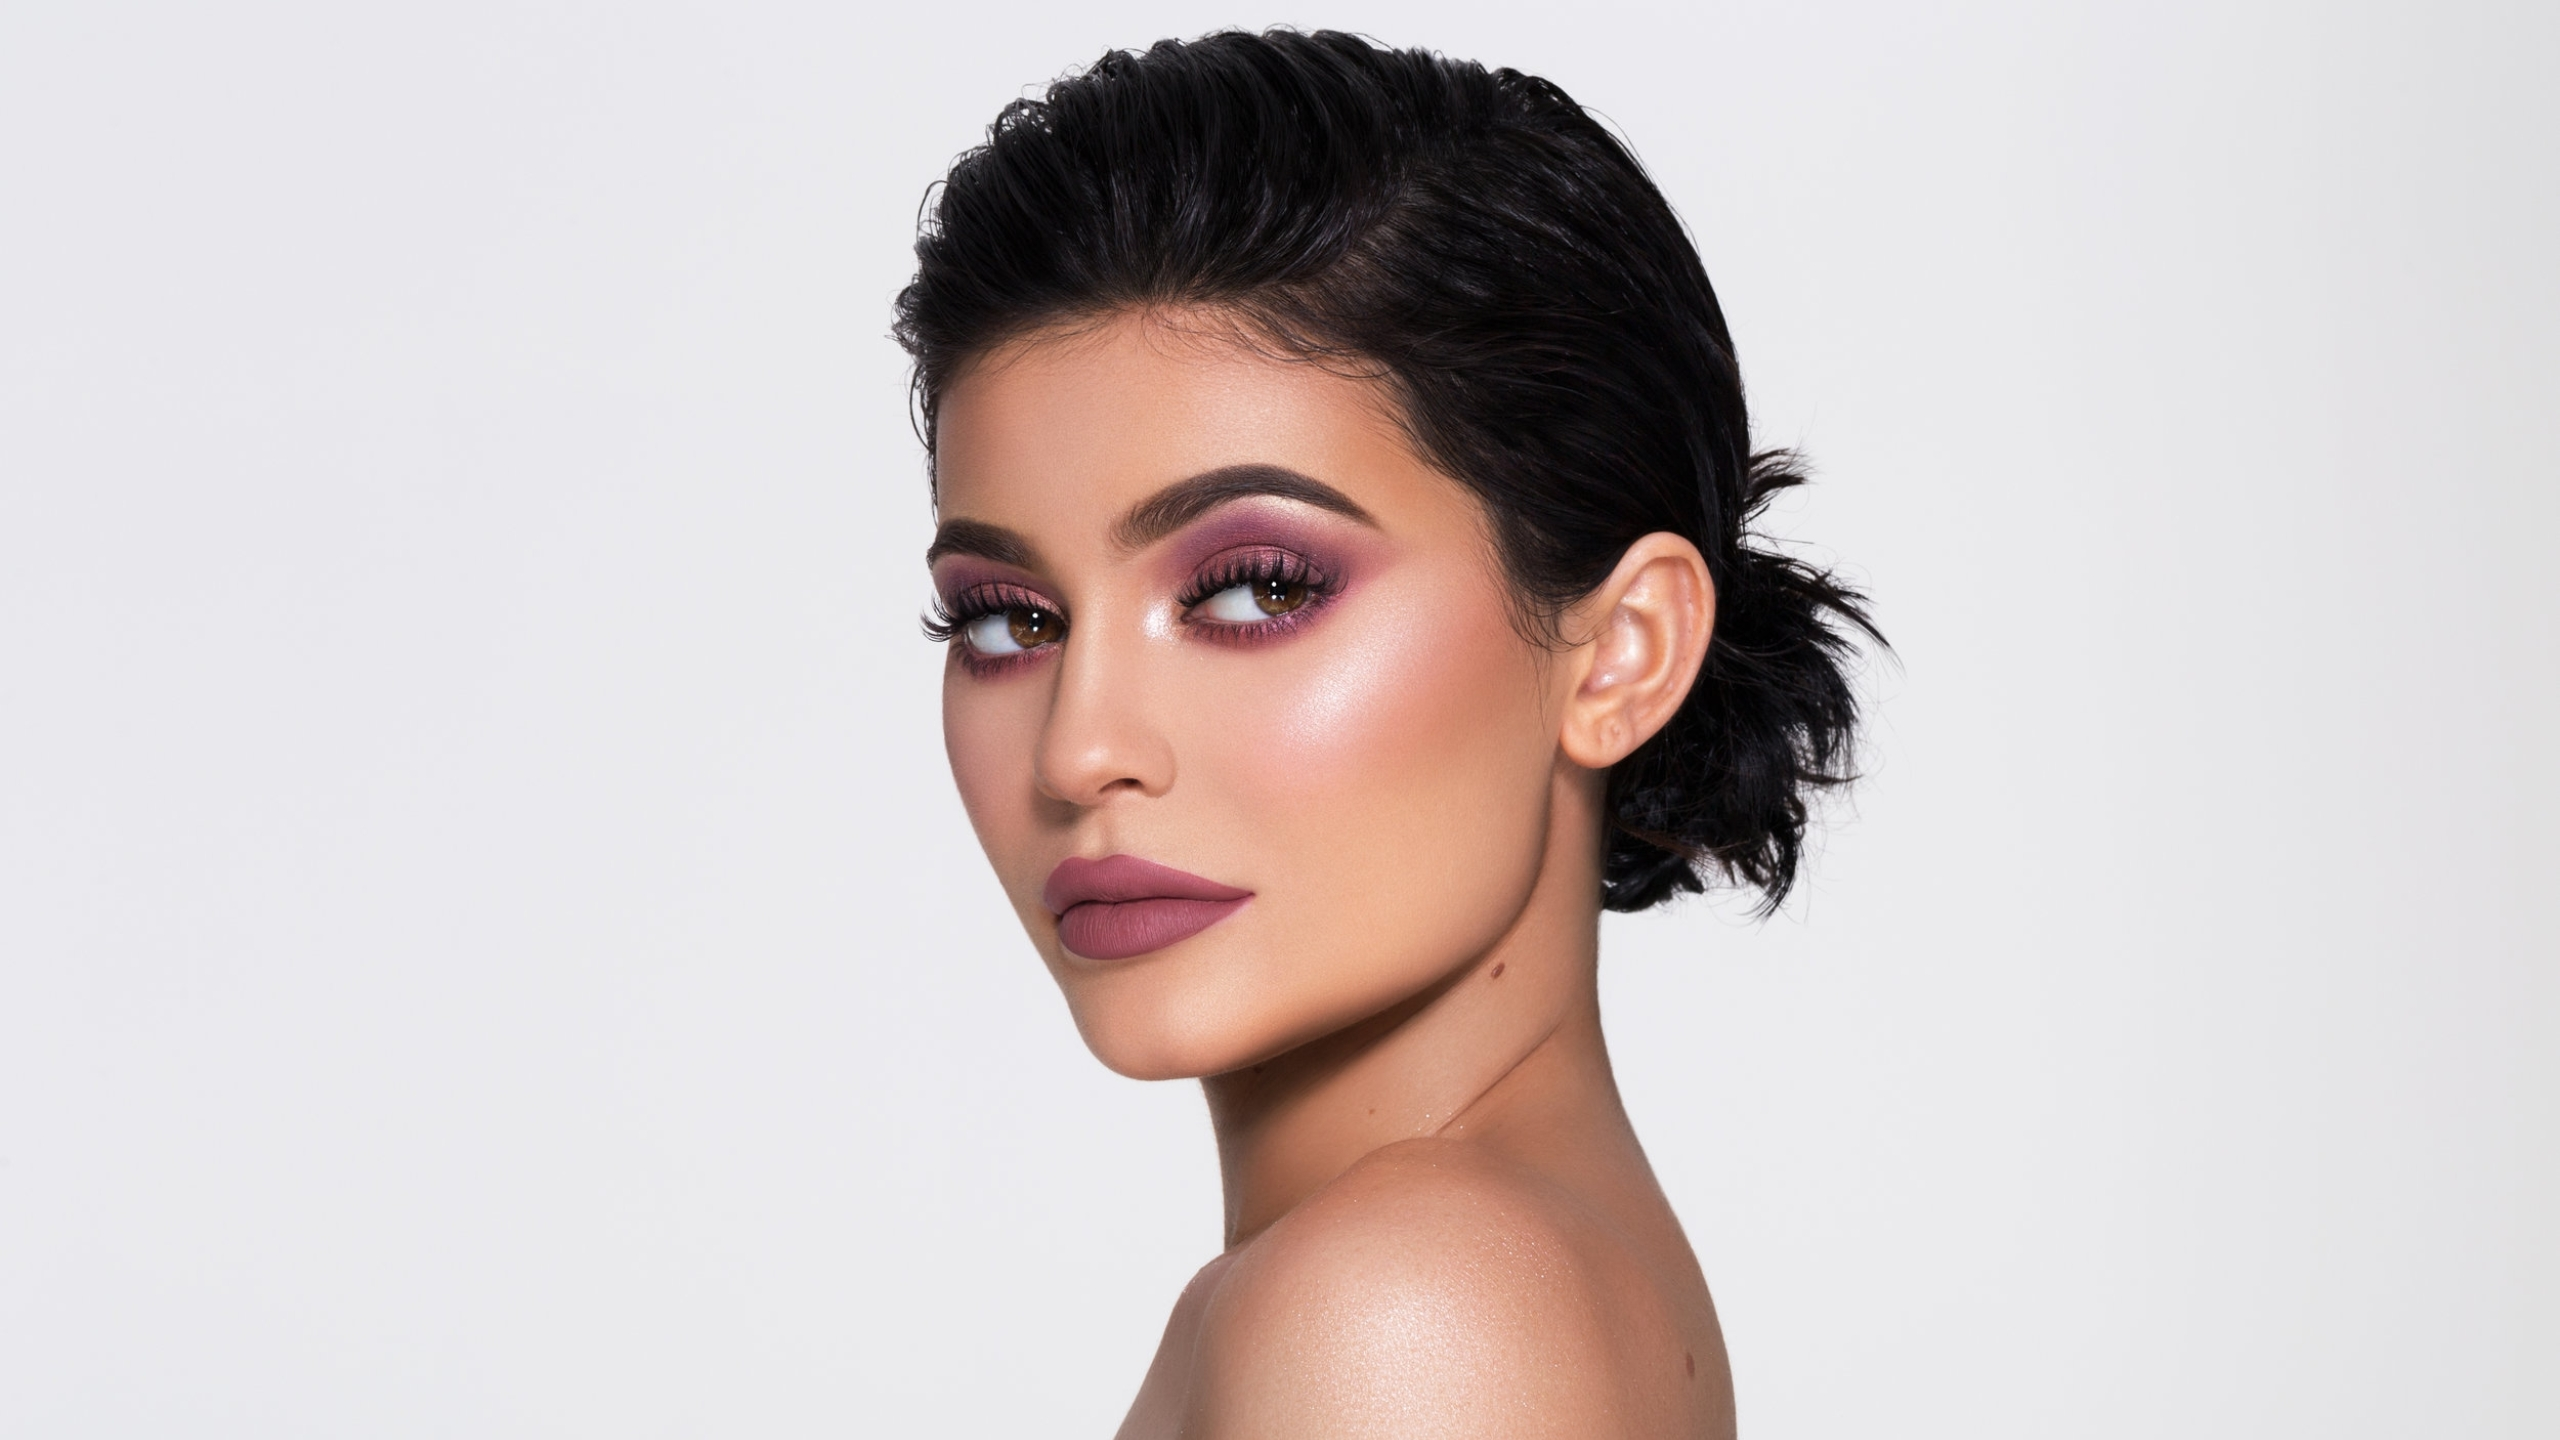 Kylie Jenner 2017 Hd Wallpapers: Download Kylie Jenner Cosmetics Campaign 2017 2560x1080